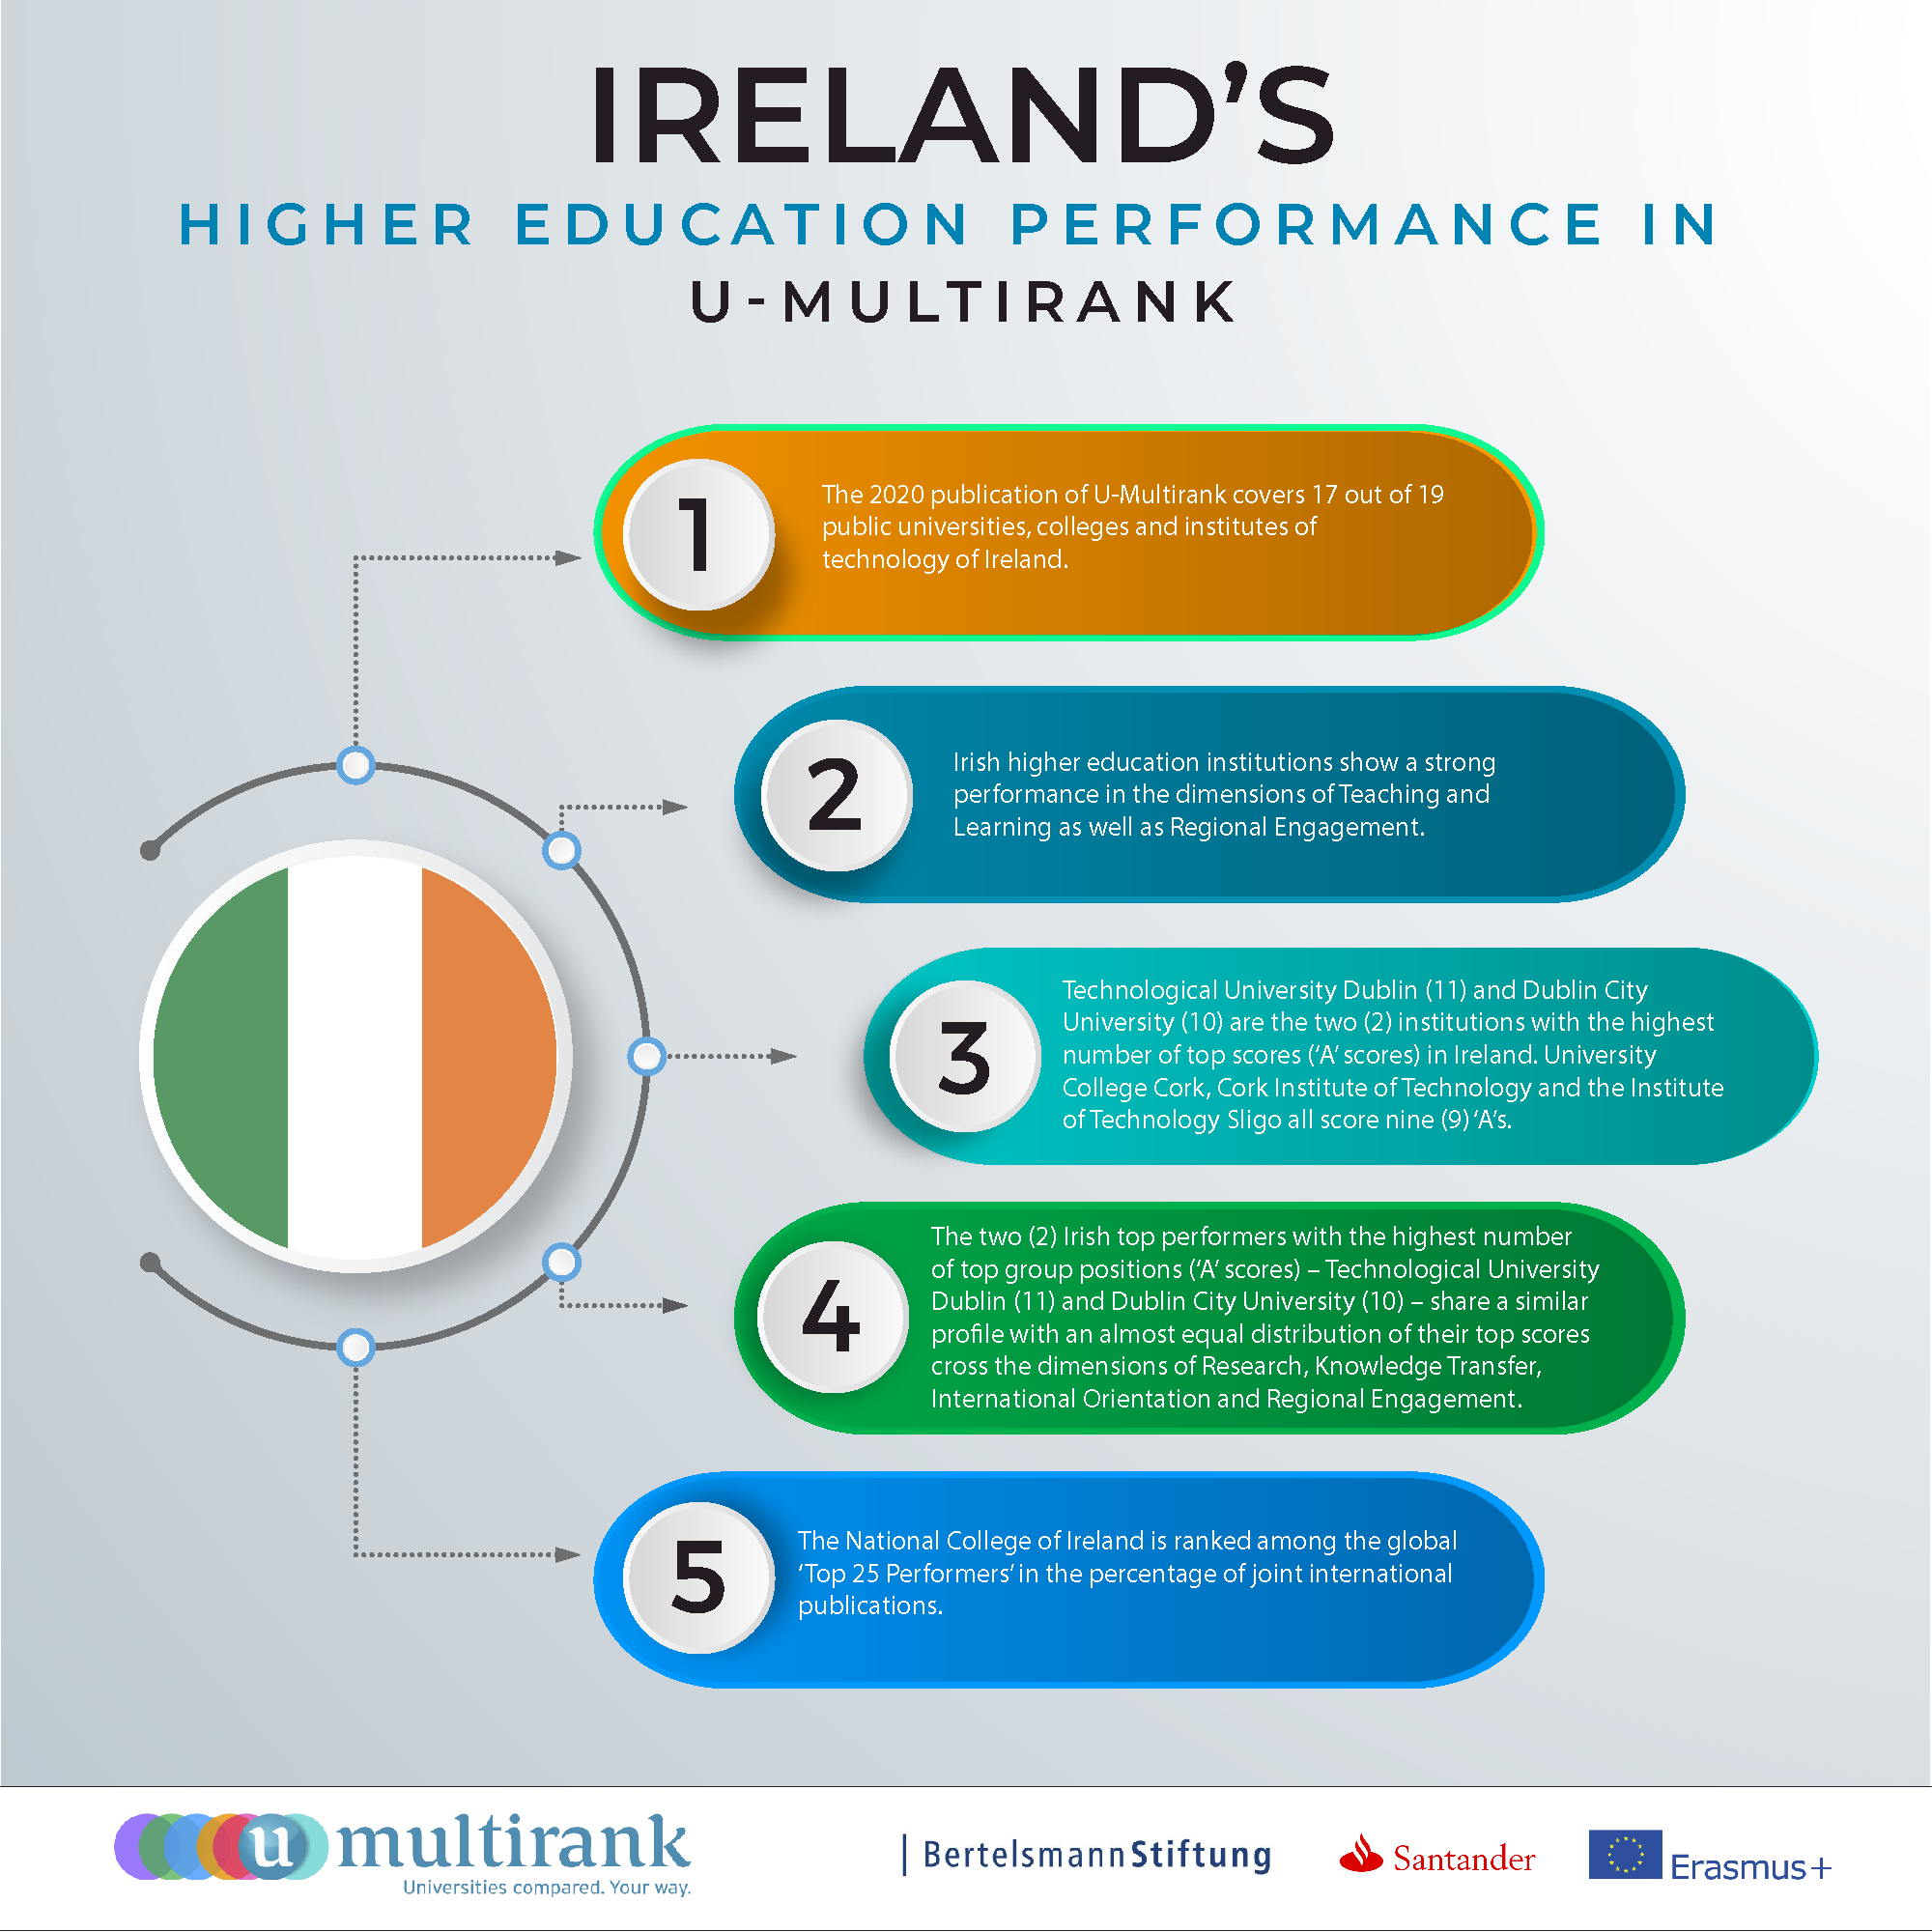 Ireland's Higher Education Performance in U-Multirank